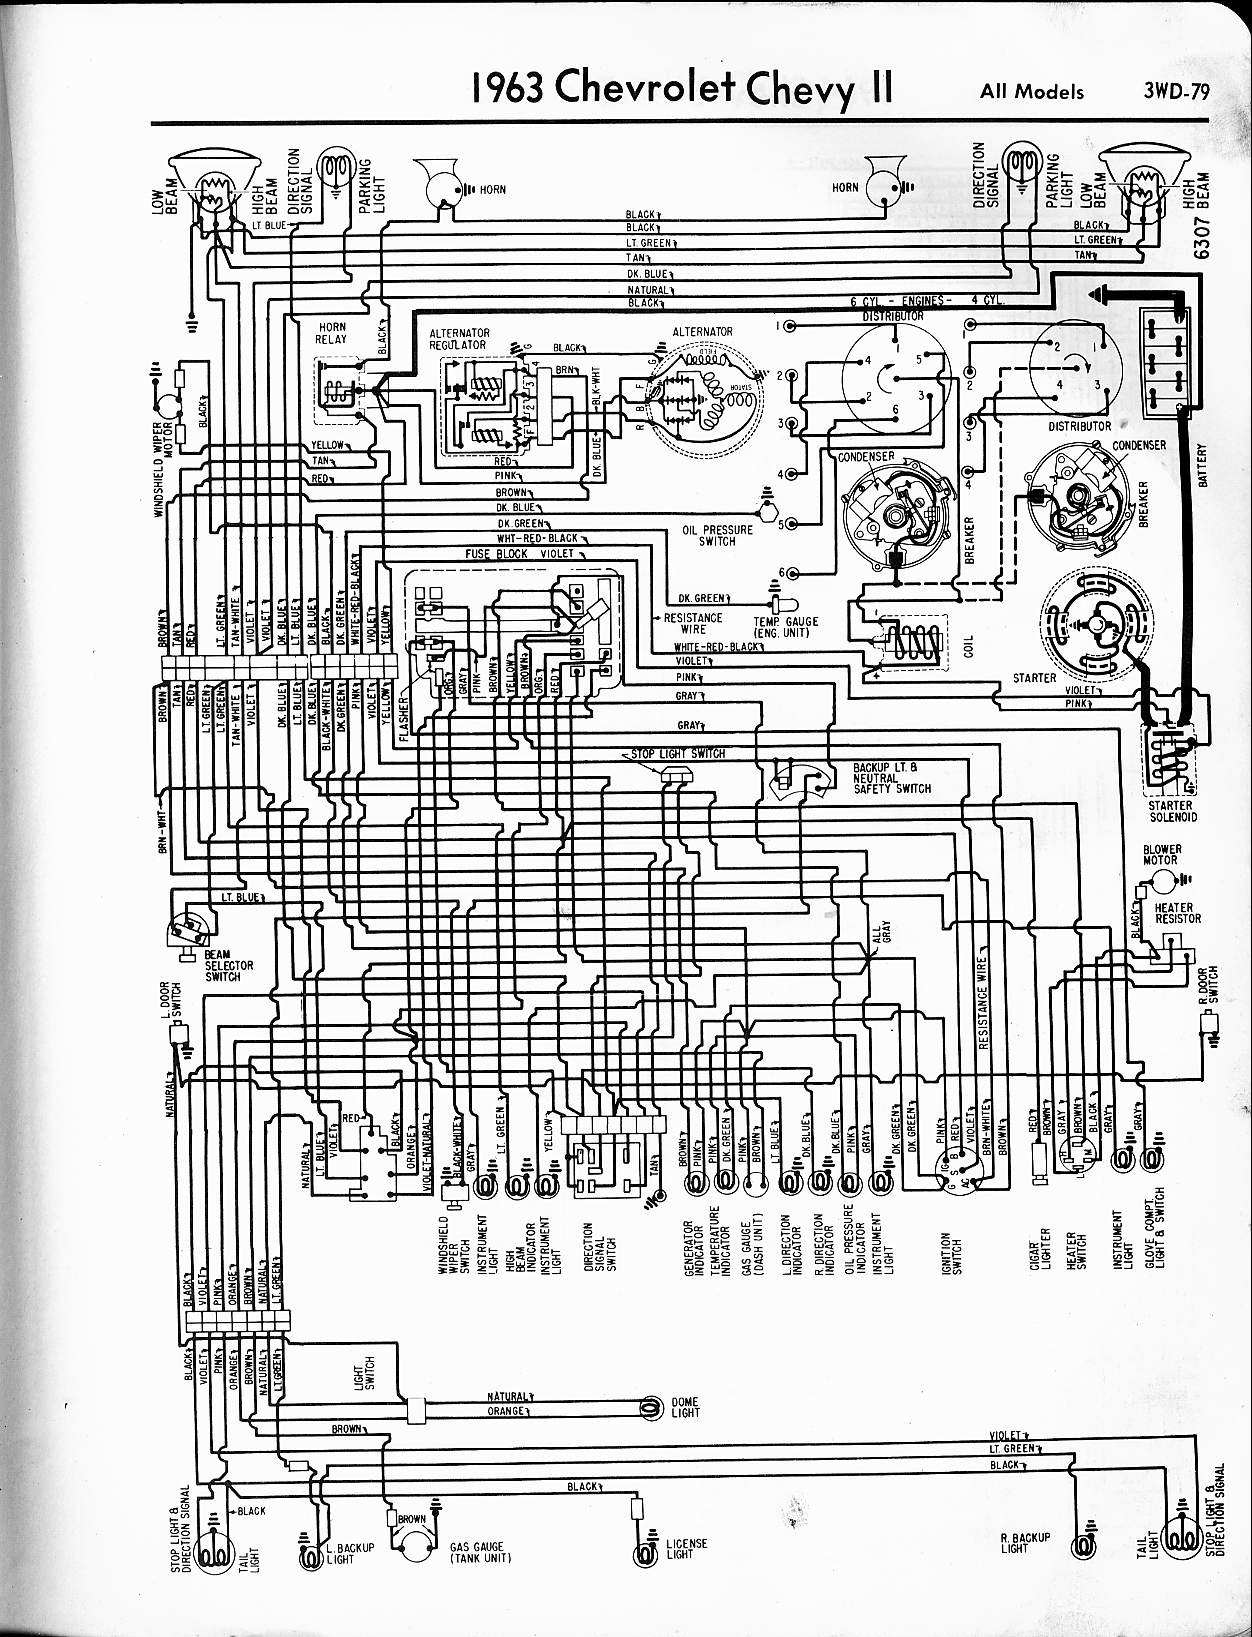 1963 corvair ignition diagram wiring schematic wiring data rh unroutine co